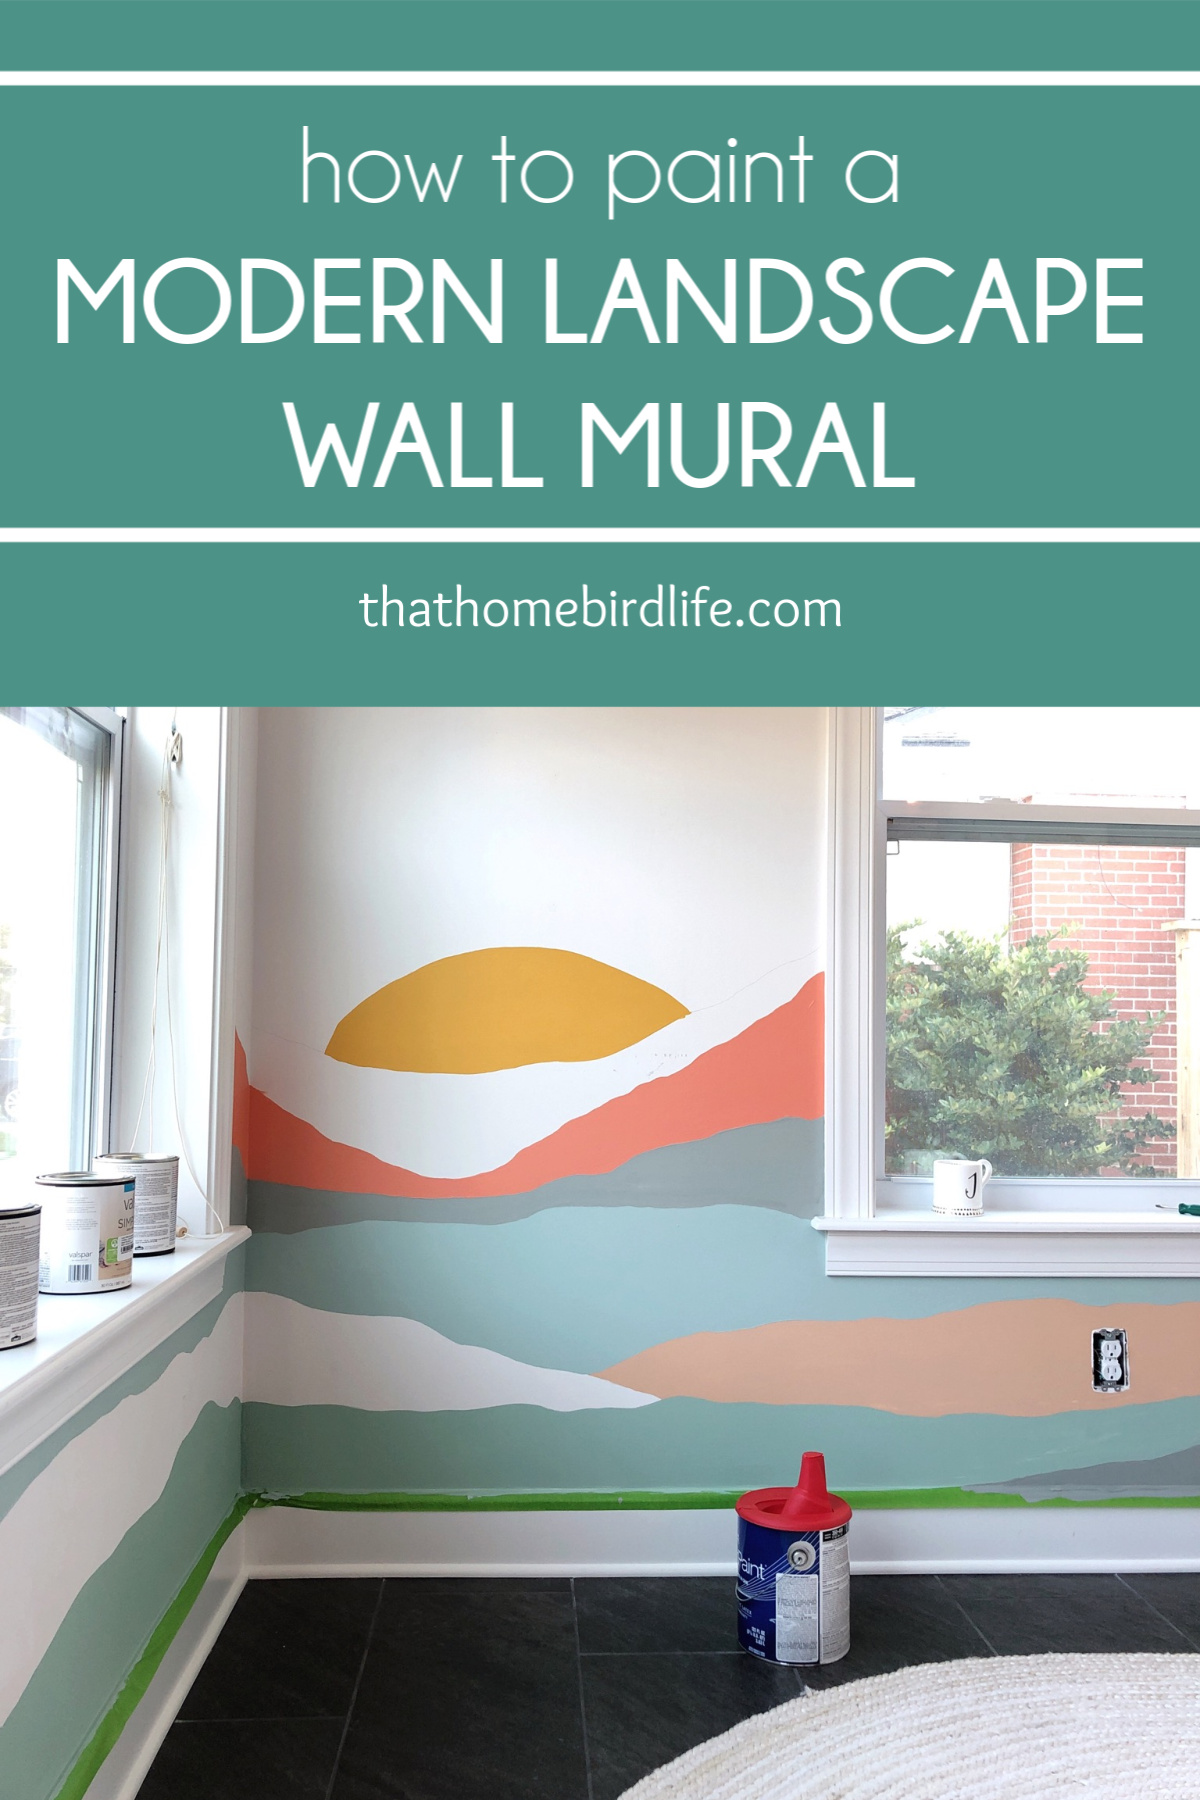 Mural with Text overlay - How To Paint a Modern Landscape Wall Mural